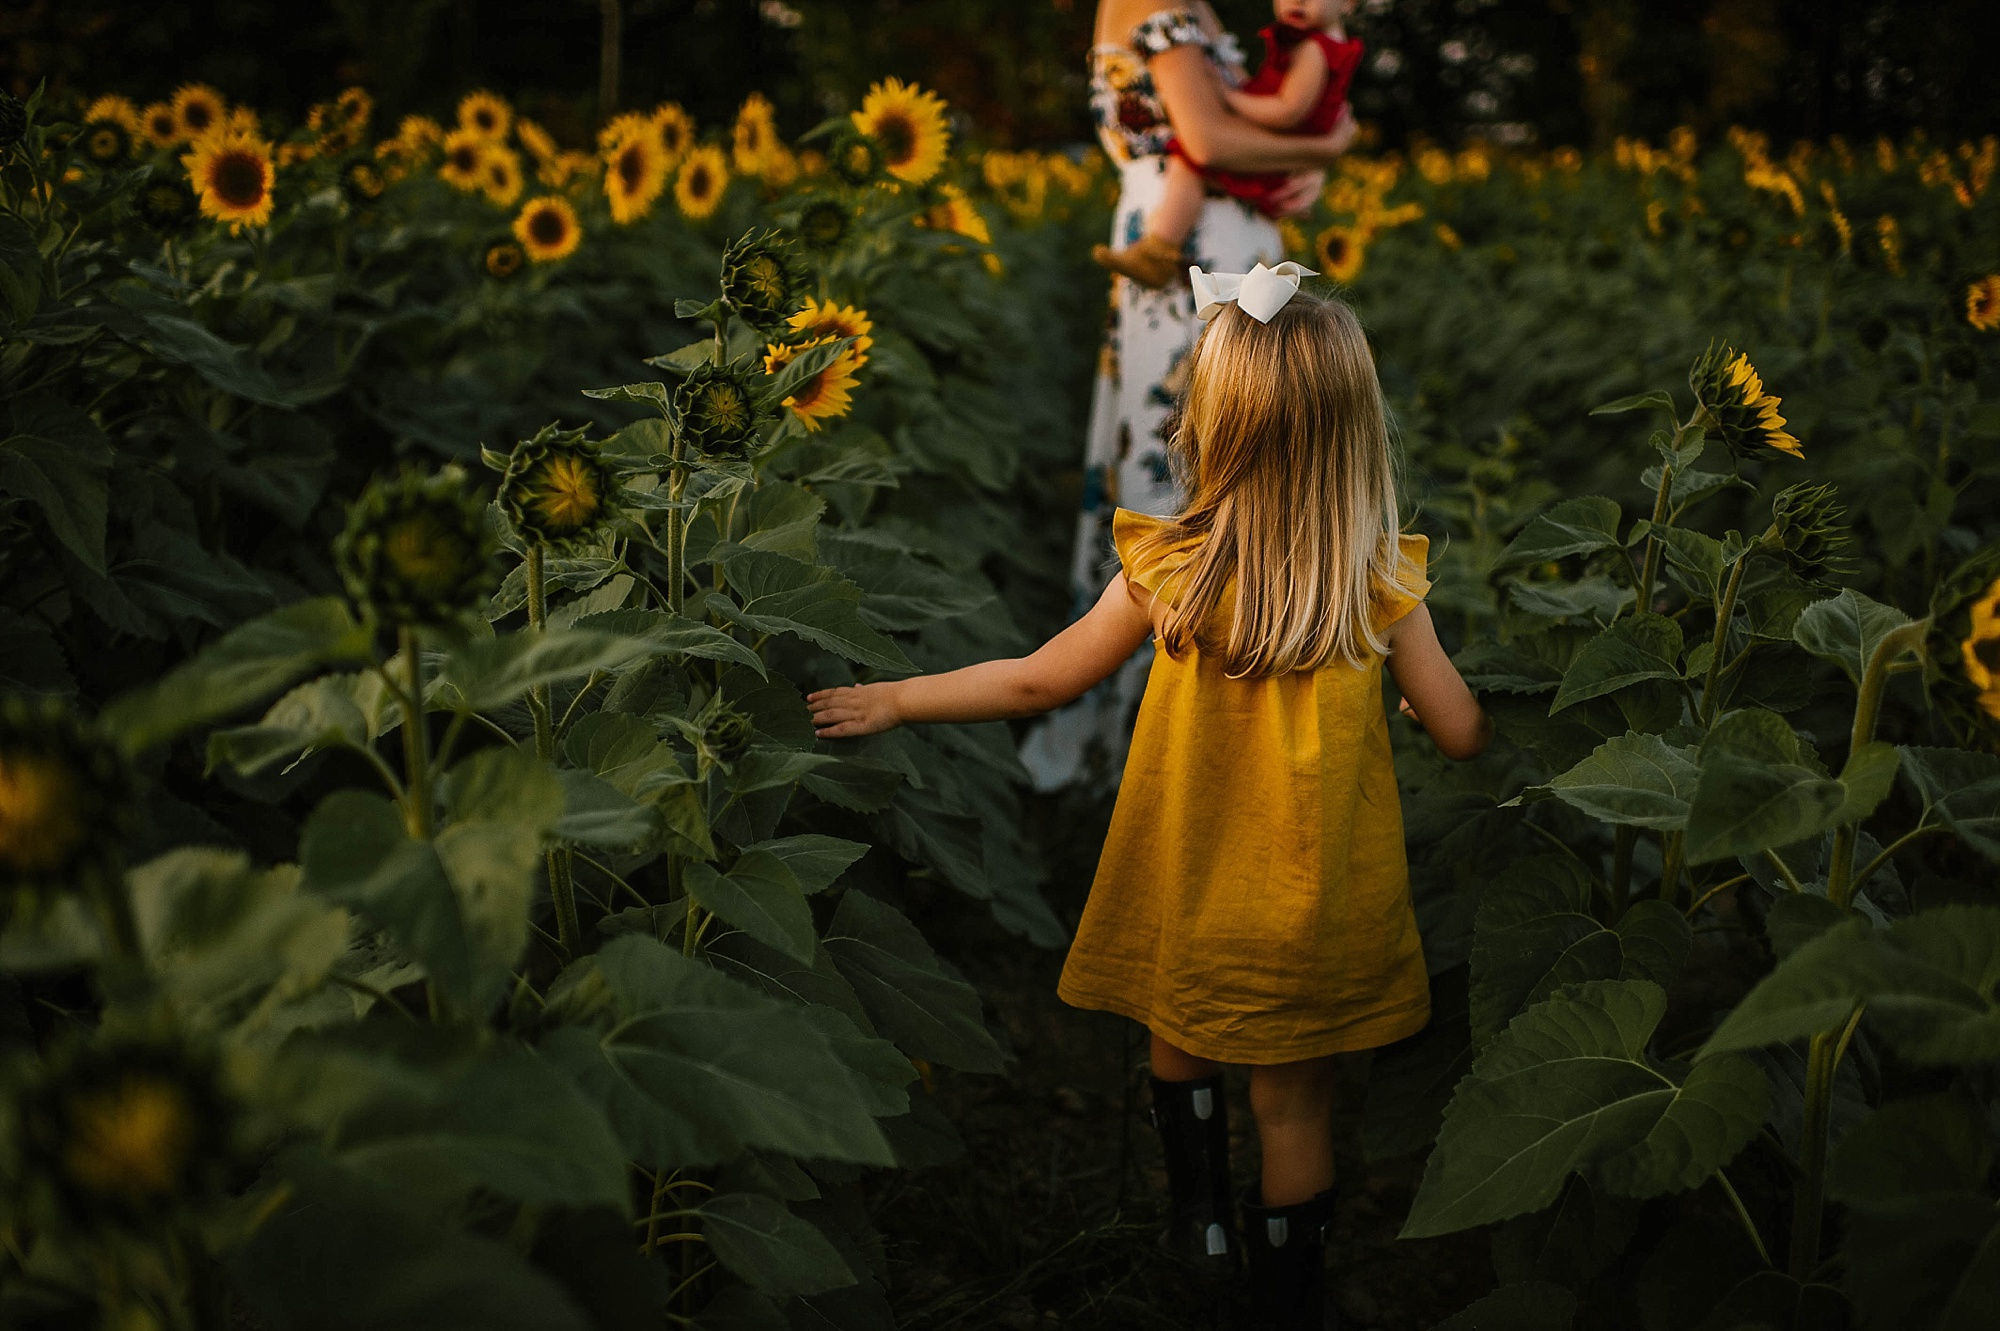 lauren-grayson-photography-cleveland-ohio-photographer-sunflower-fields-sunset-golden-hour-photo-shoot-mommy-and-me-family-child-photographer_0563.jpg